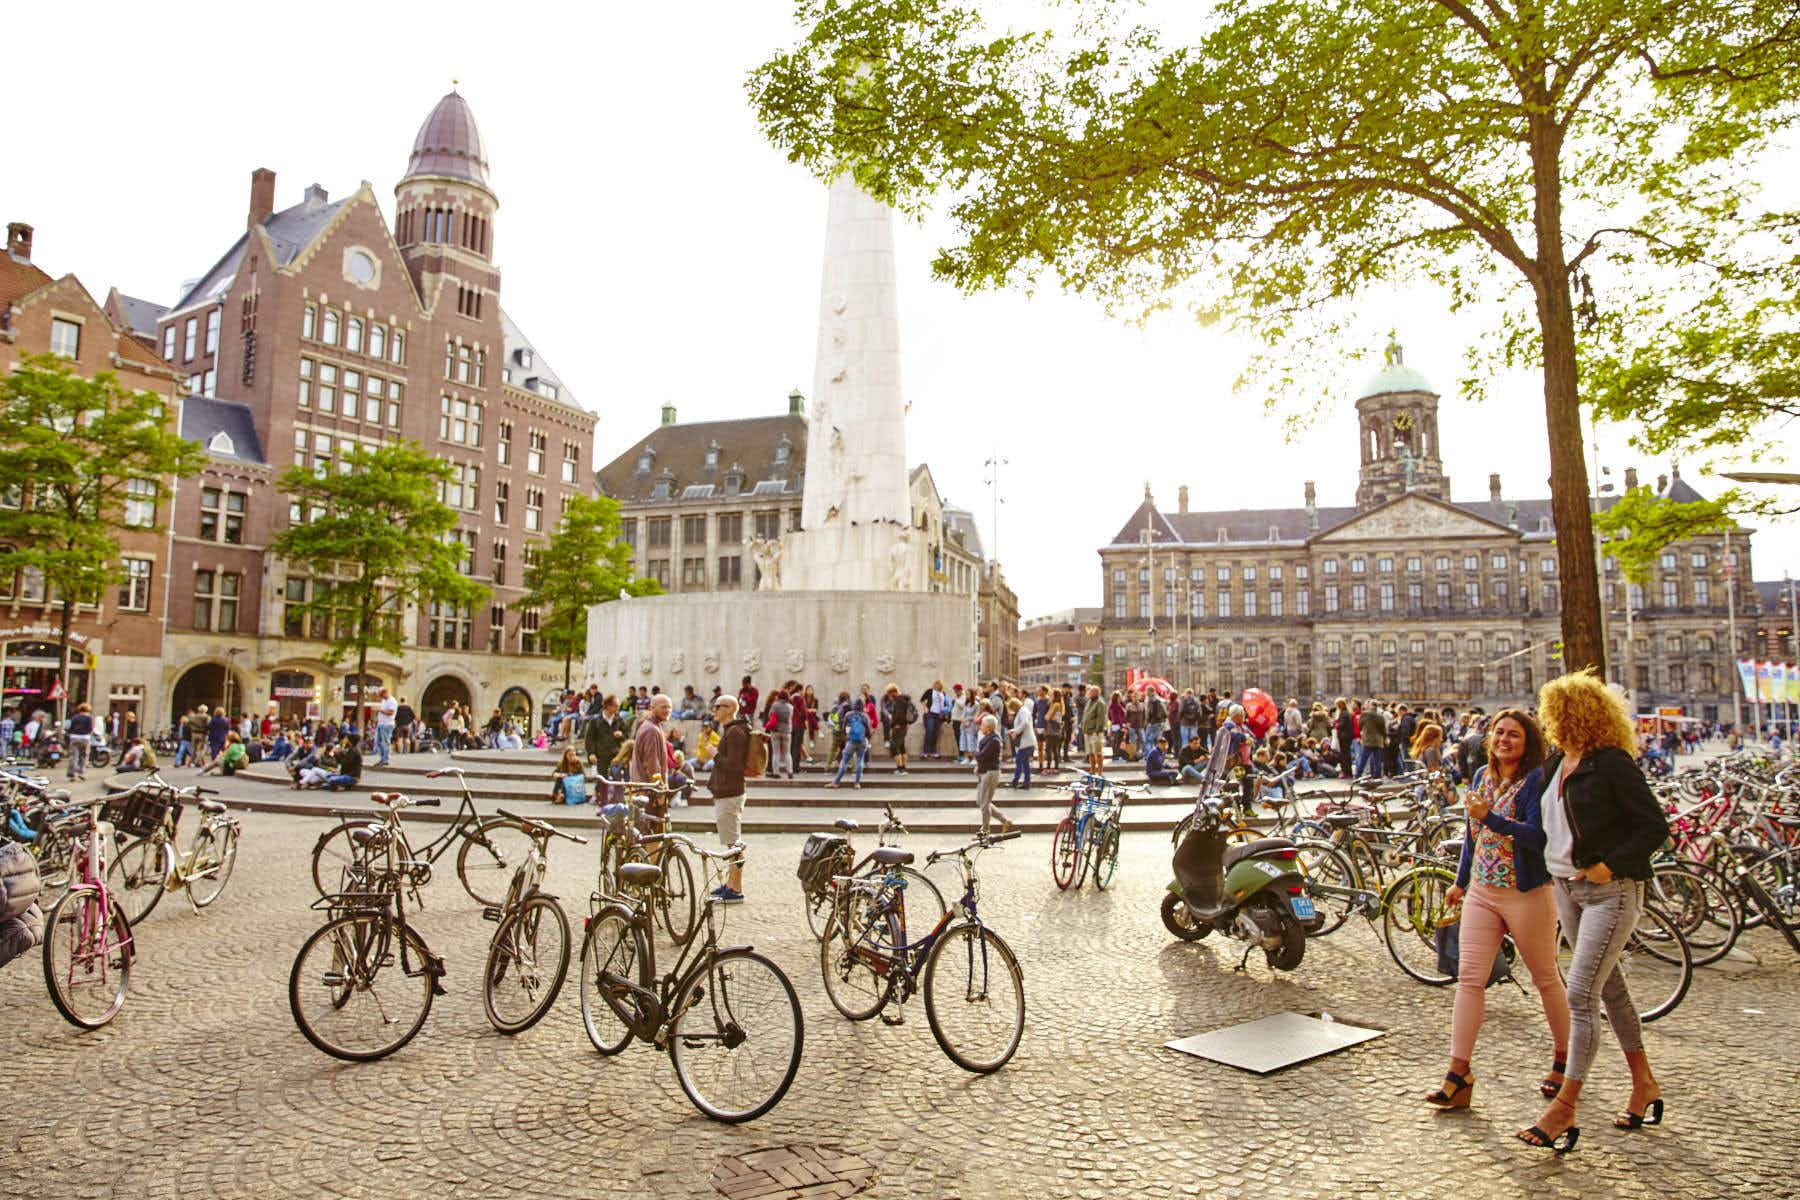 Amsterdam is making even more moves to become a cyclist's paradise